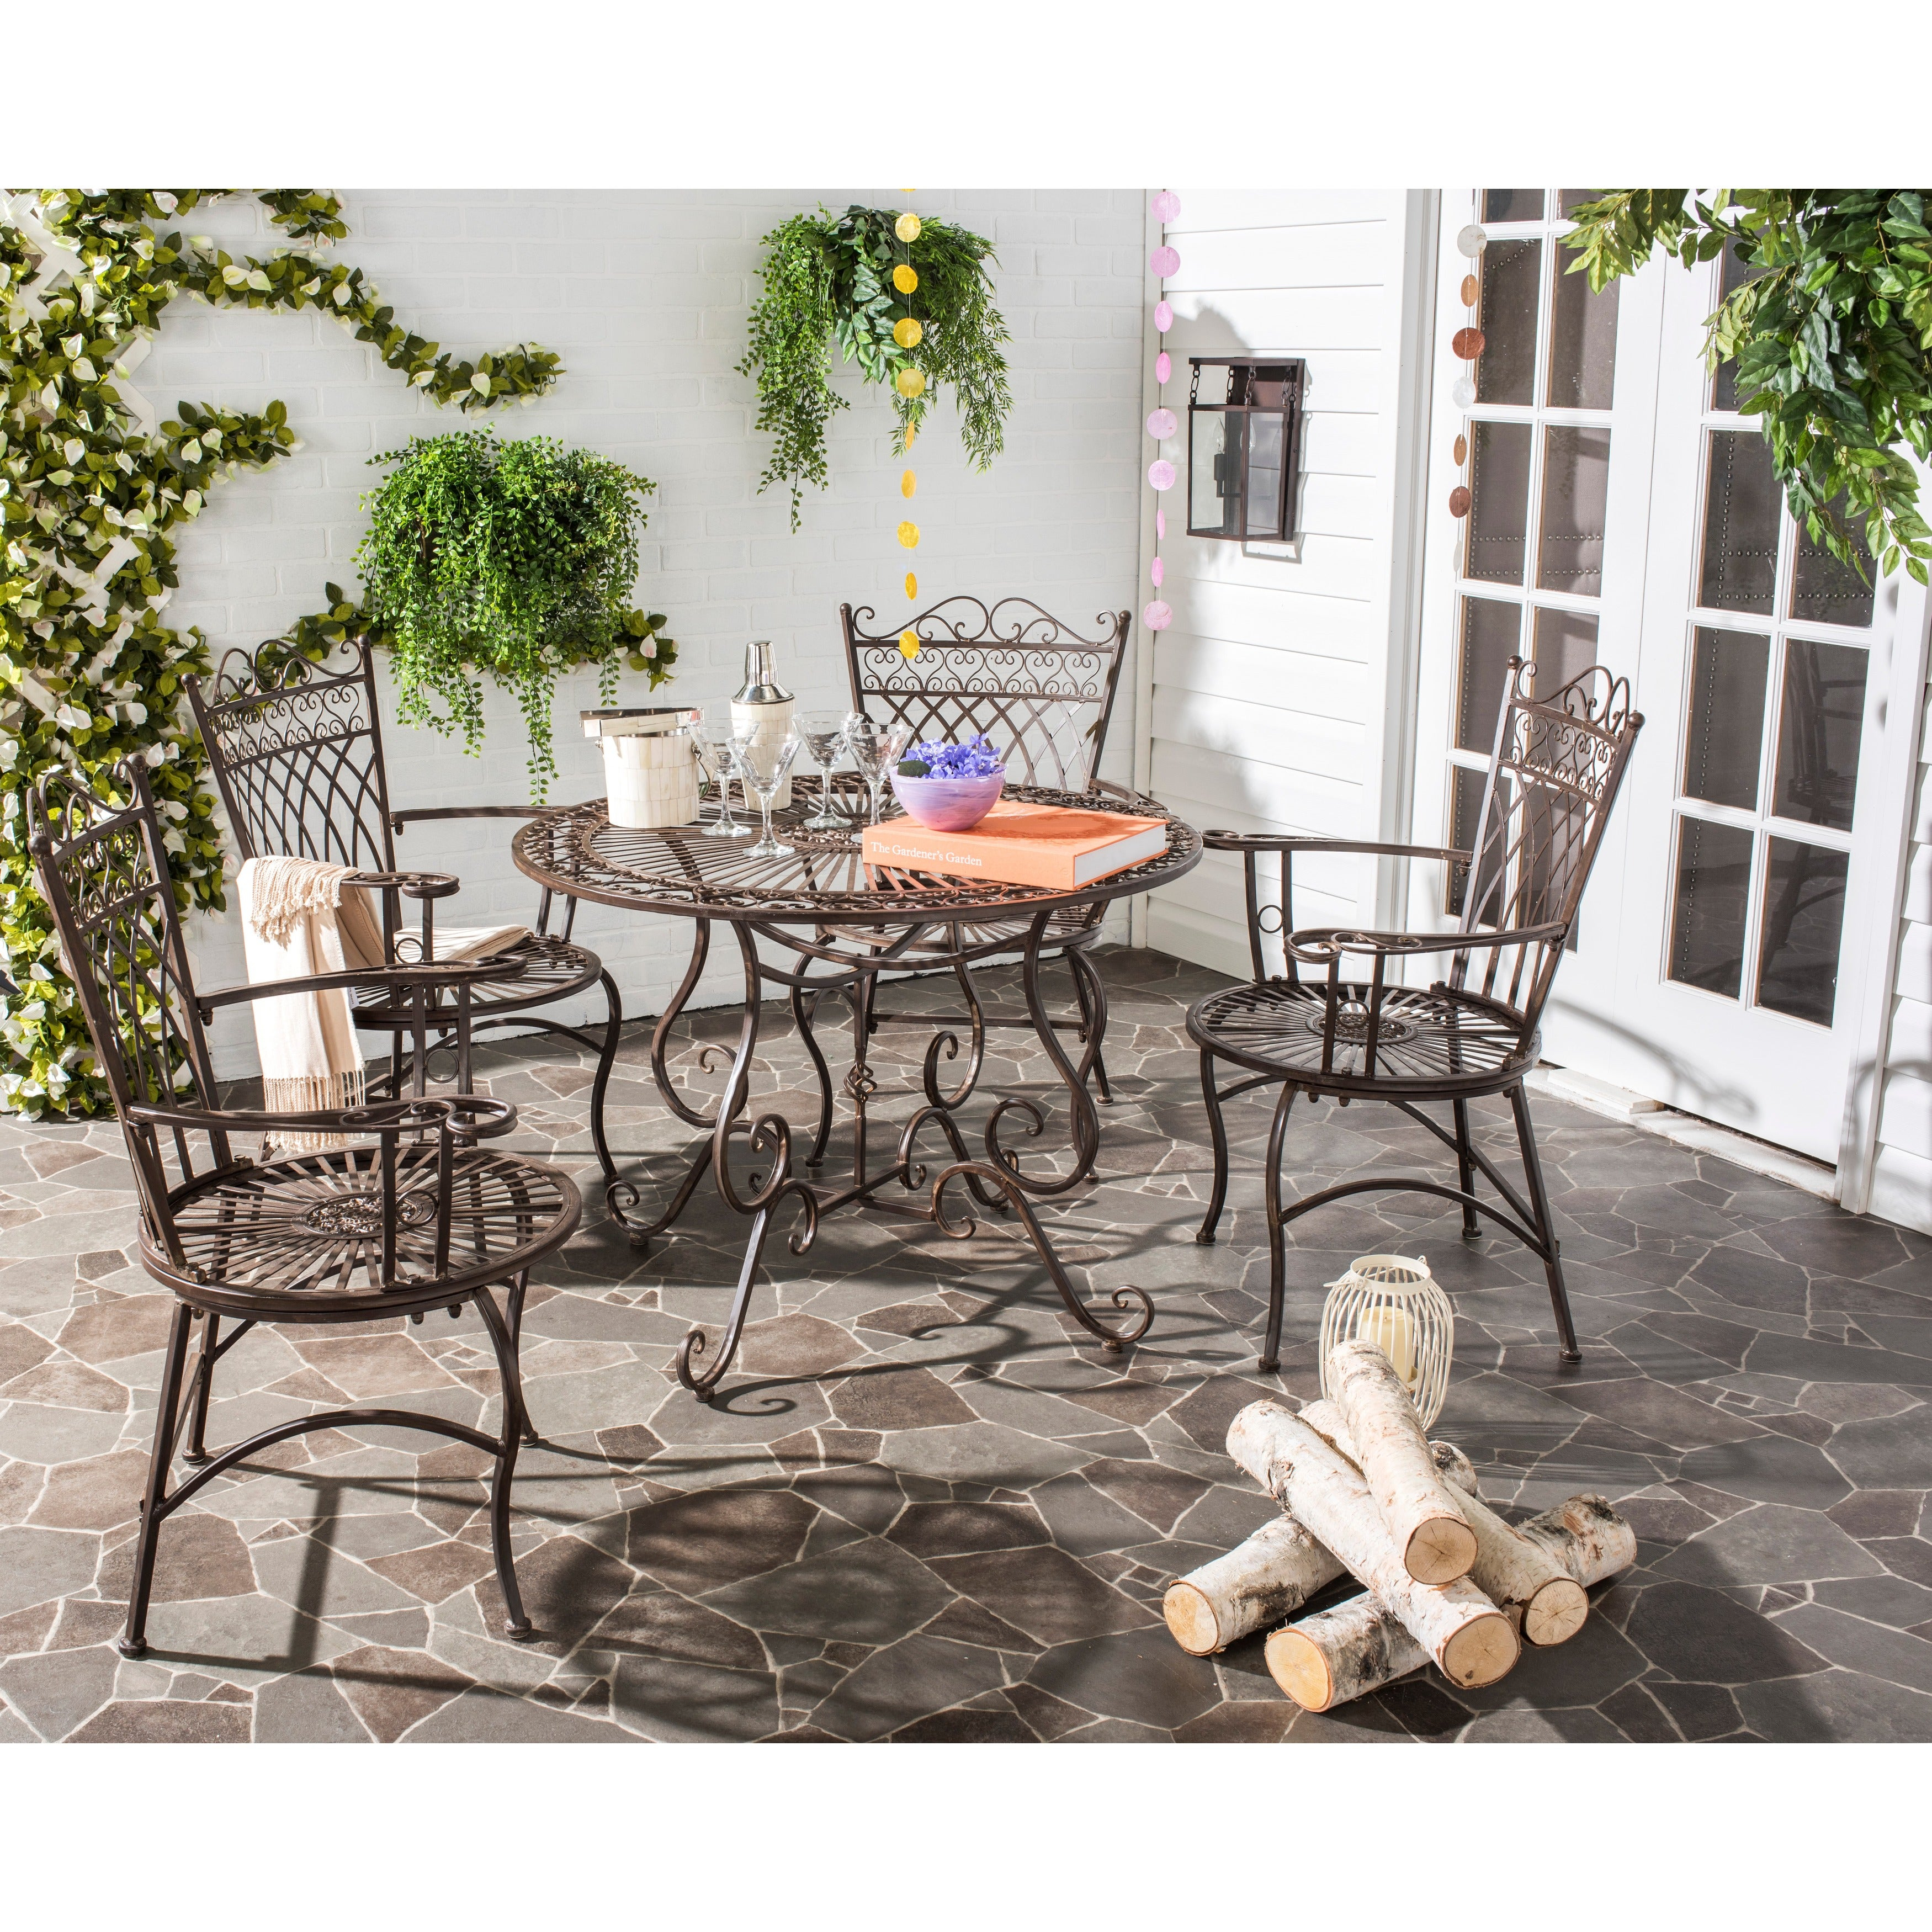 Details About Outdoor Dining Set 5 Table Chairs Vintage Rustic Wrought Iron Patio Furniture throughout dimensions 3500 X 3500